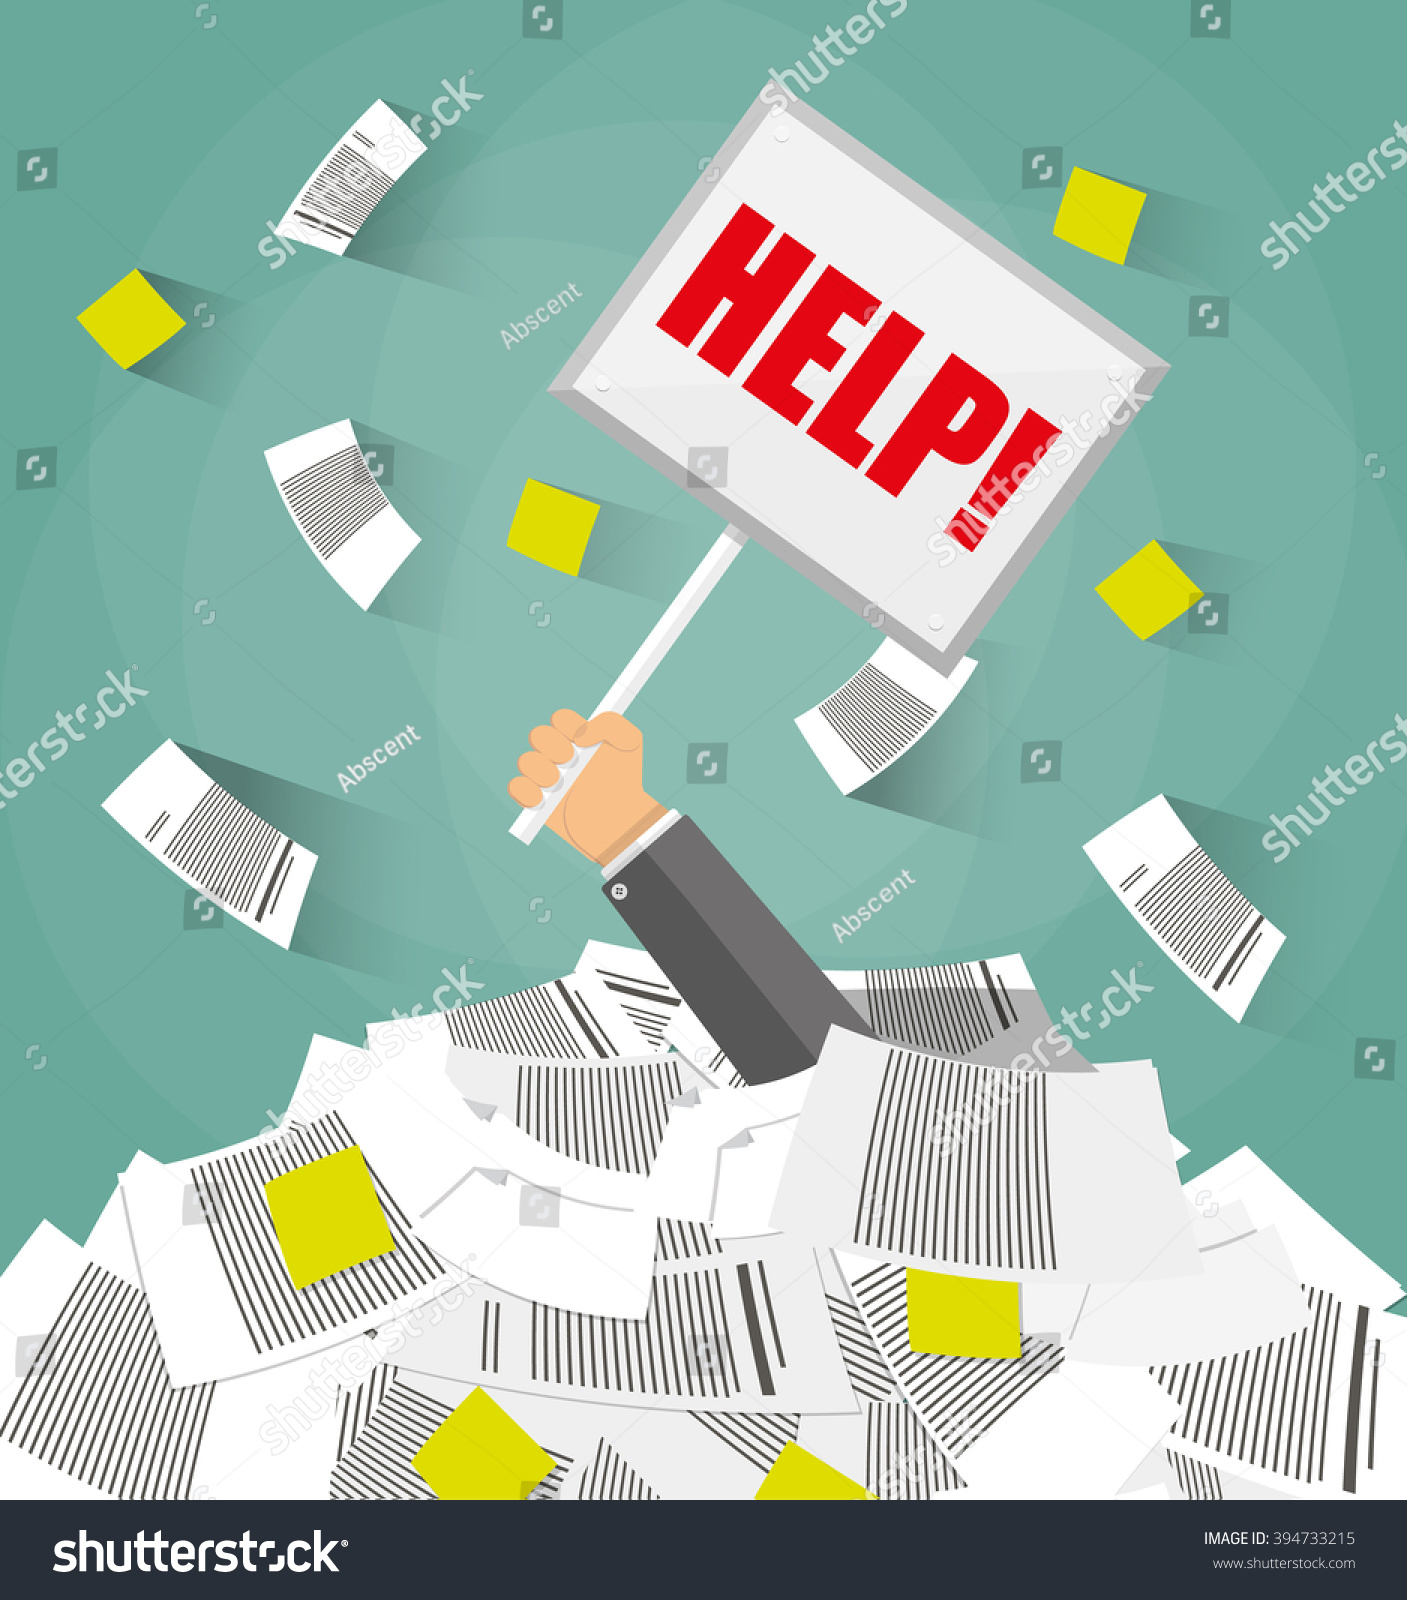 stressed cartoon businessman pile office papers stock vector stressed cartoon businessman in pile of office papers and documents help sign stress at